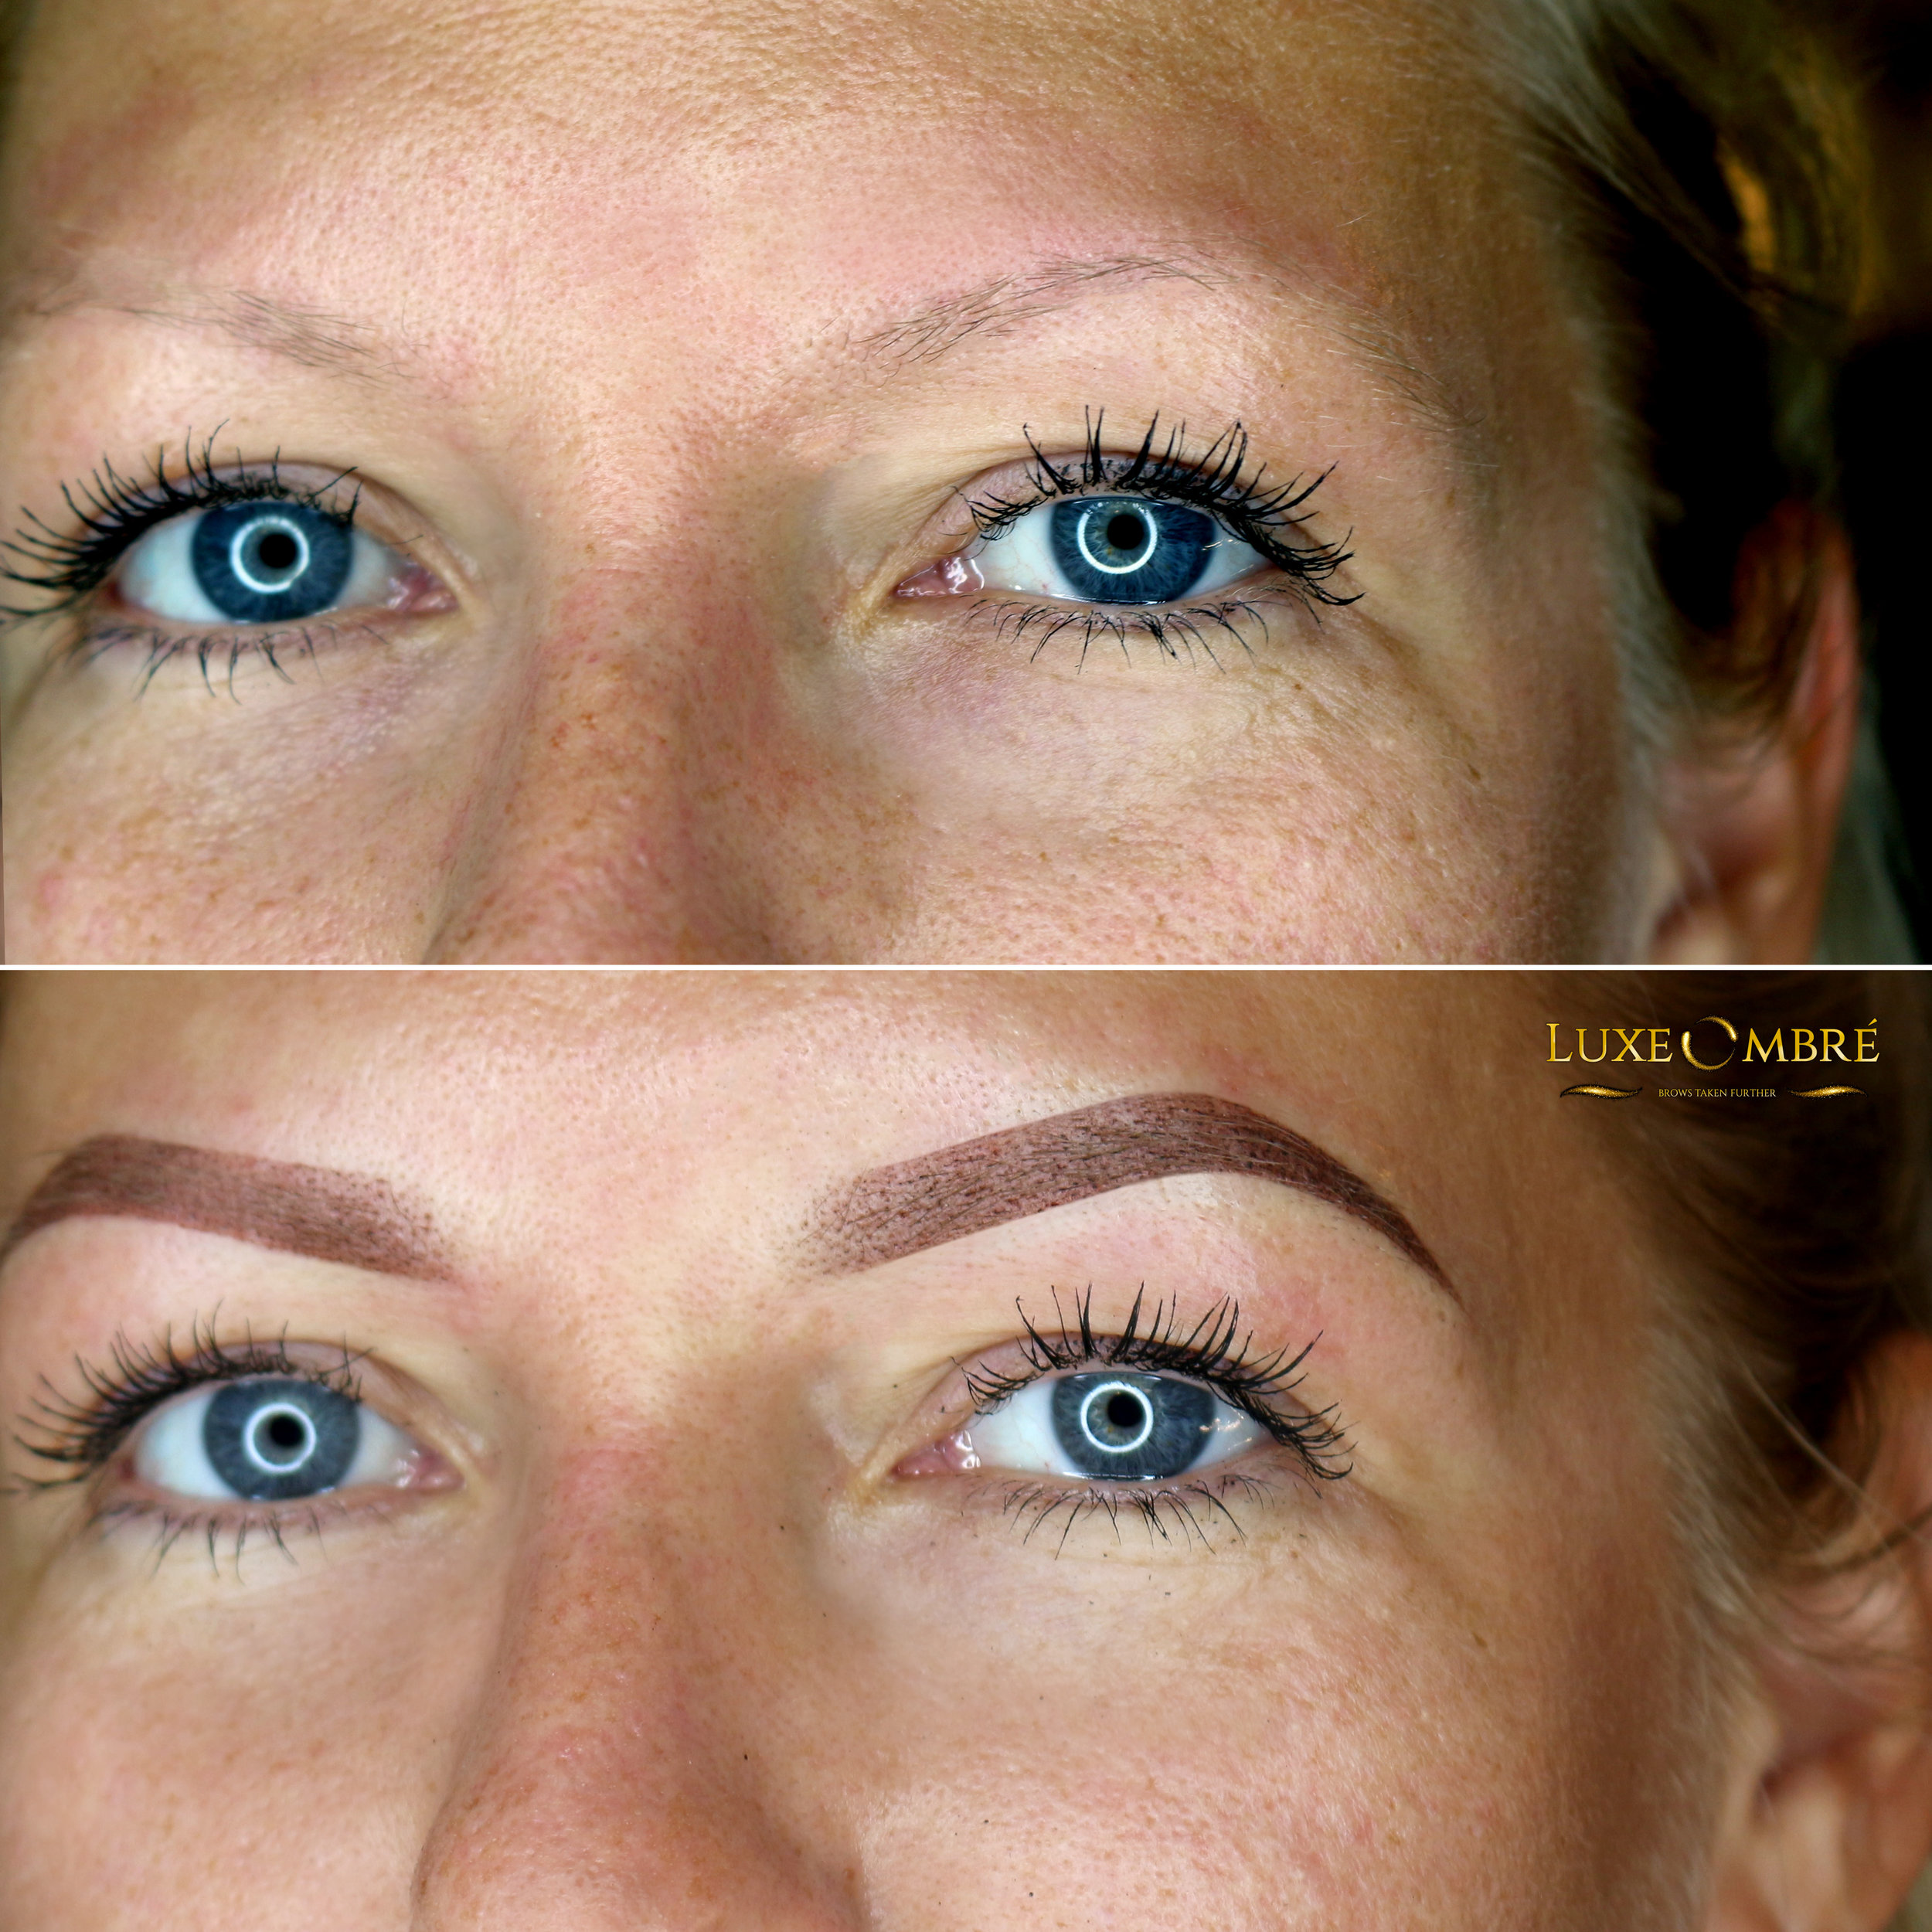 LuxeOmbre brows created on top of weak and thin brows.